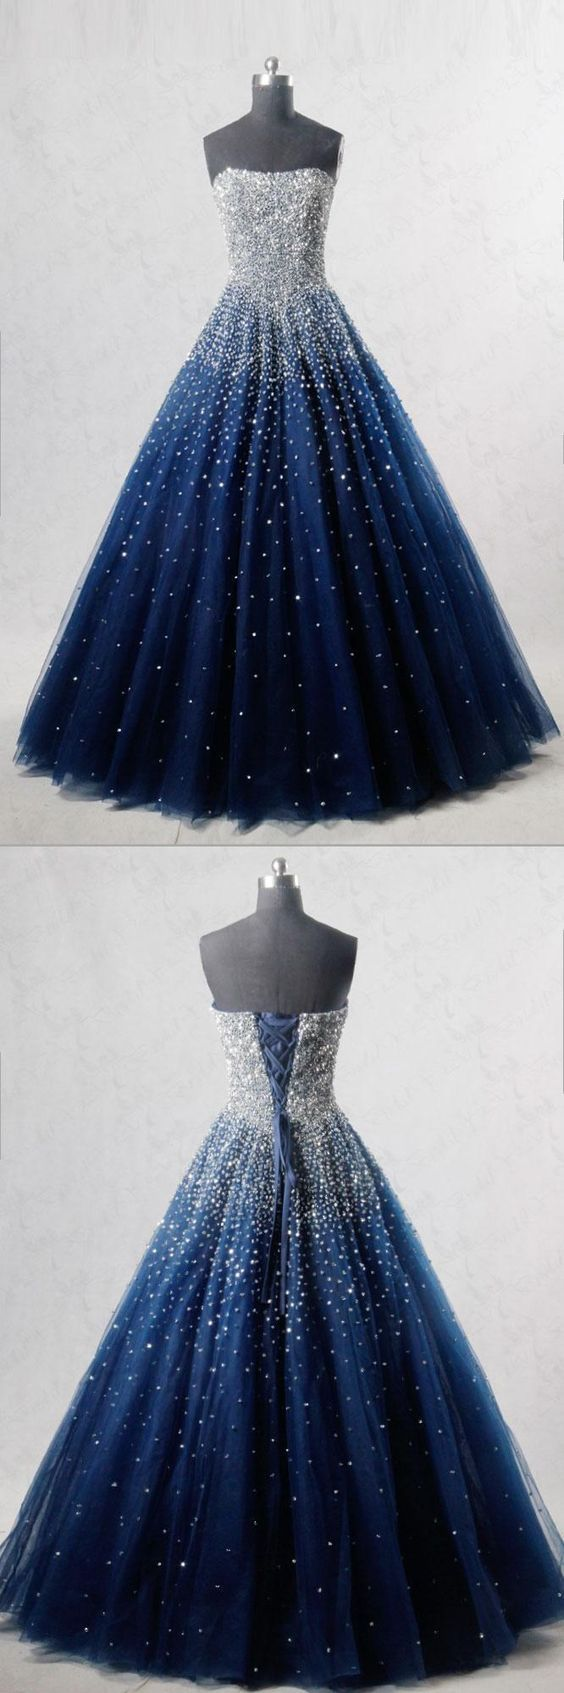 BLUE SWEETHEART SEQUIN TULLE LANGES PROM-KLEID, BLAUES ABENDKLEID von Hot Lady